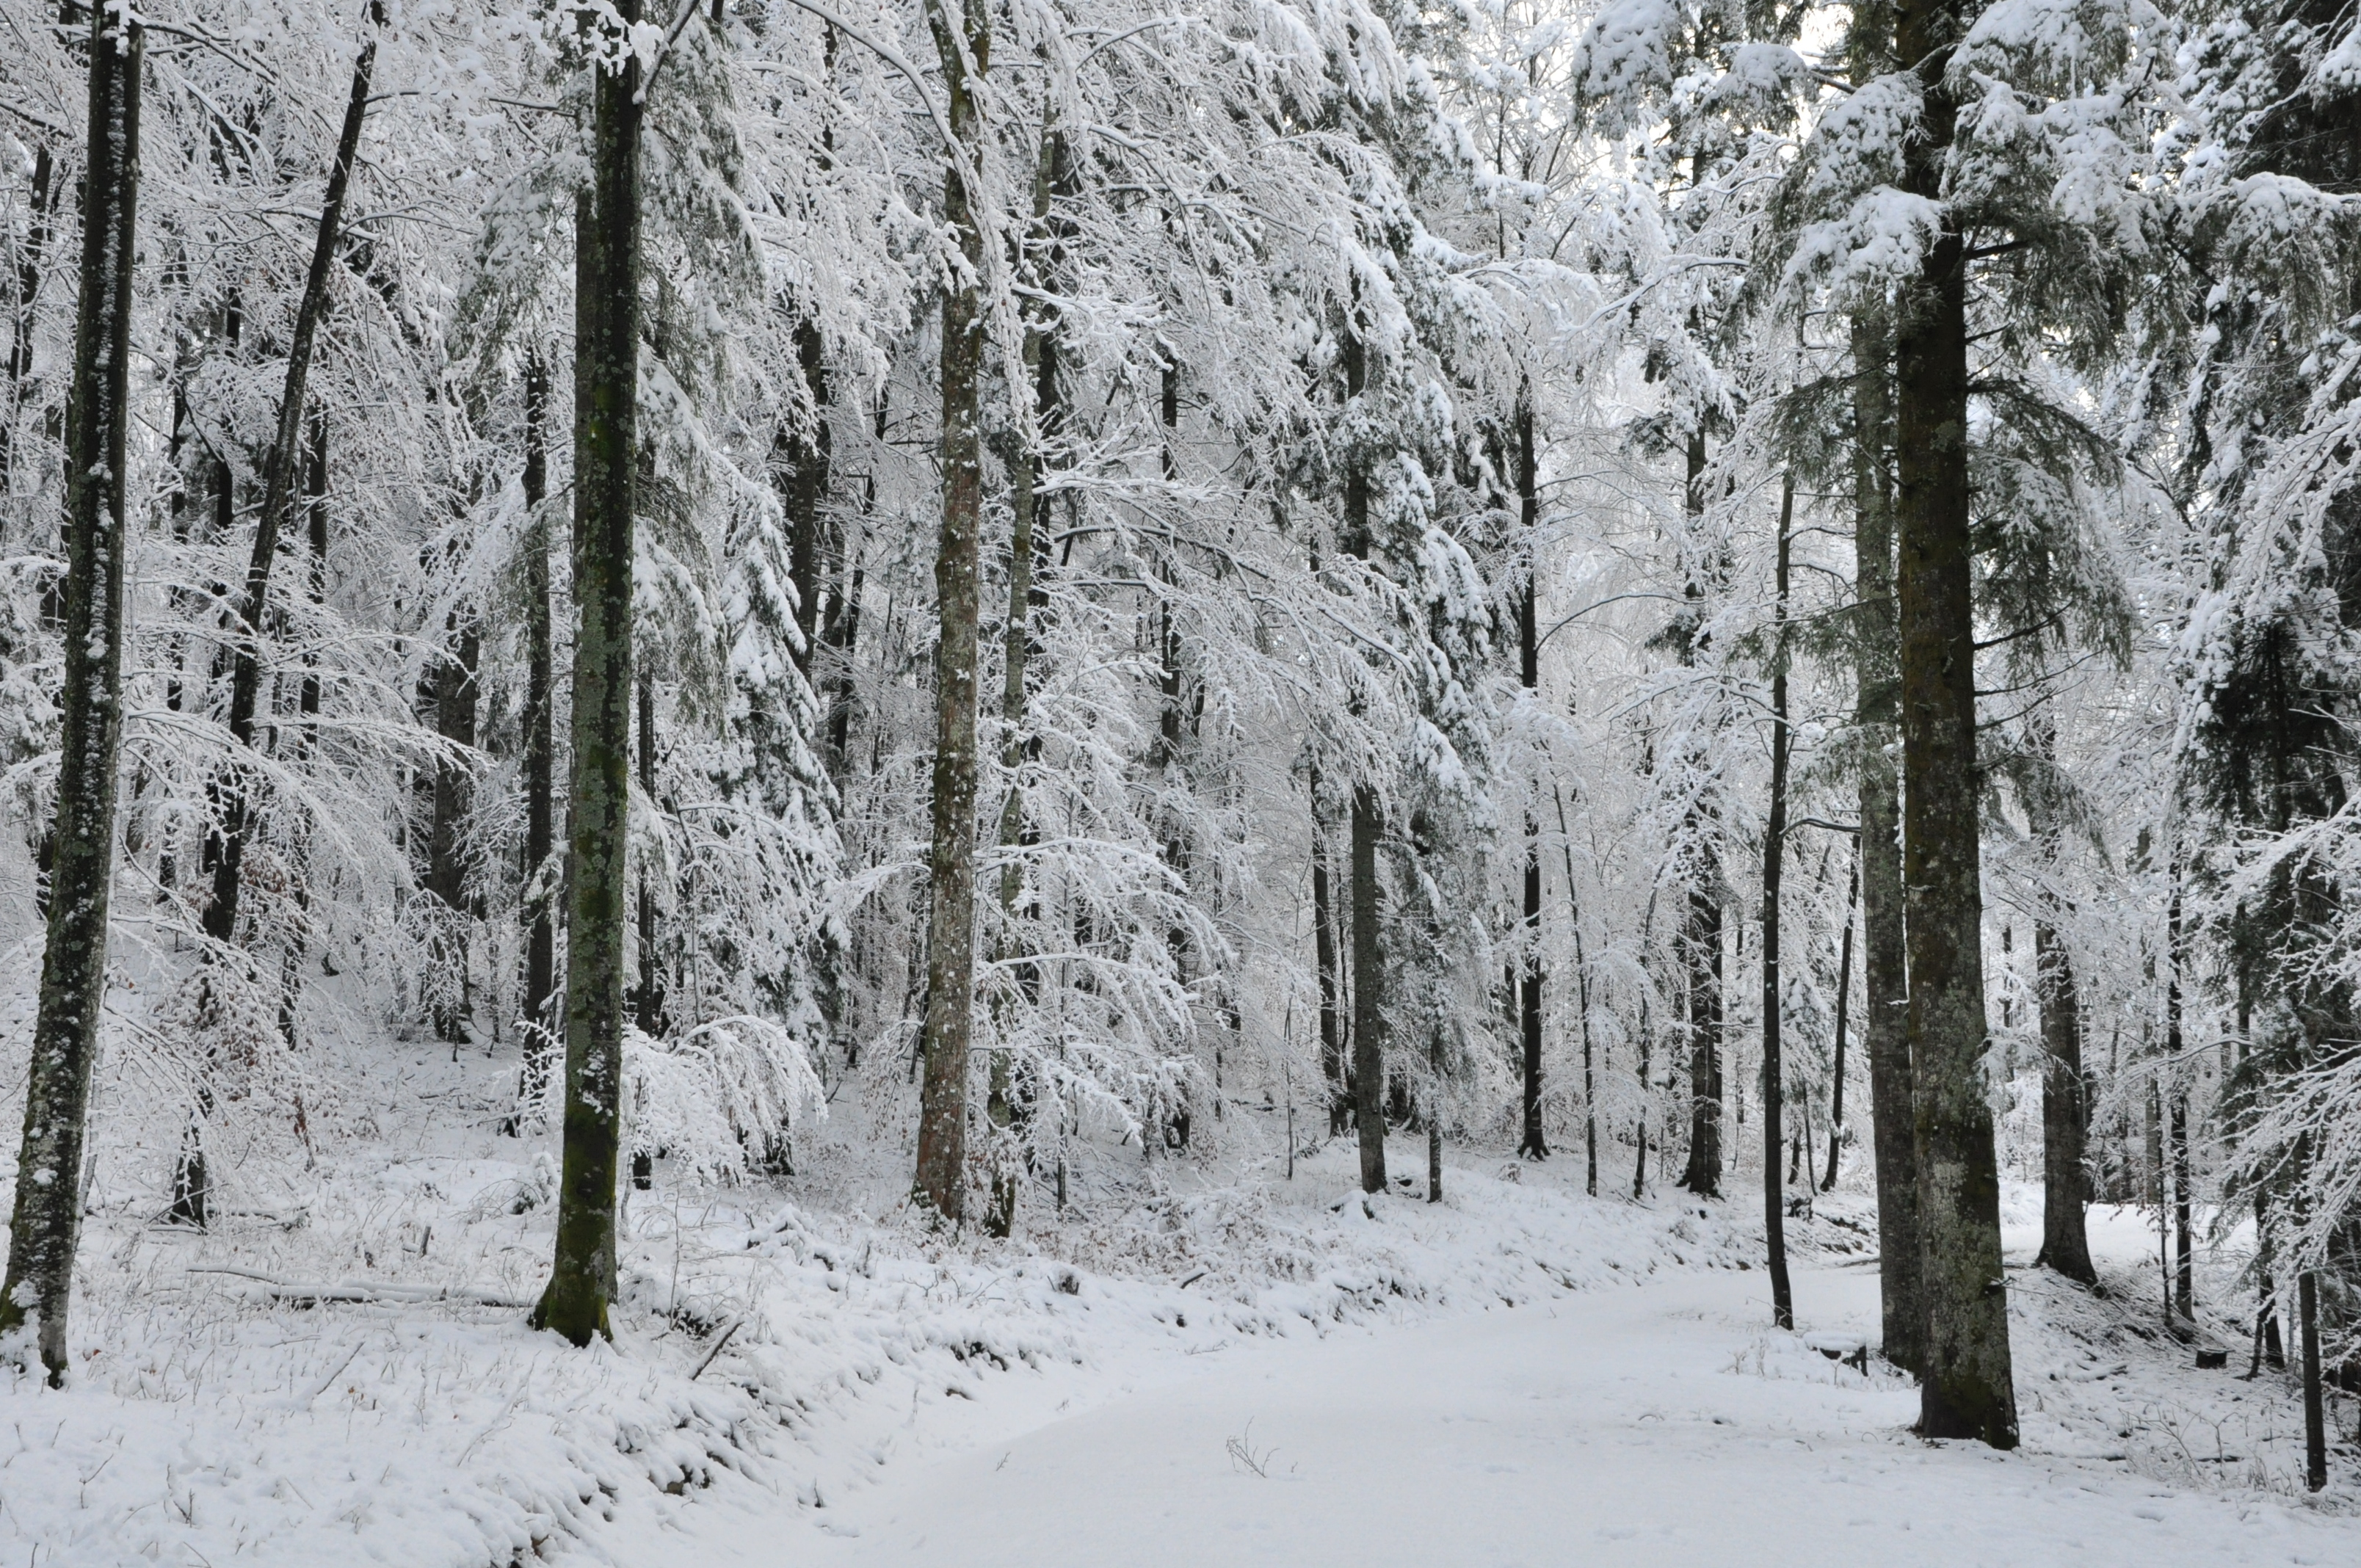 Winter in the Slovenian forest (photo by @Simon Poljanšek)